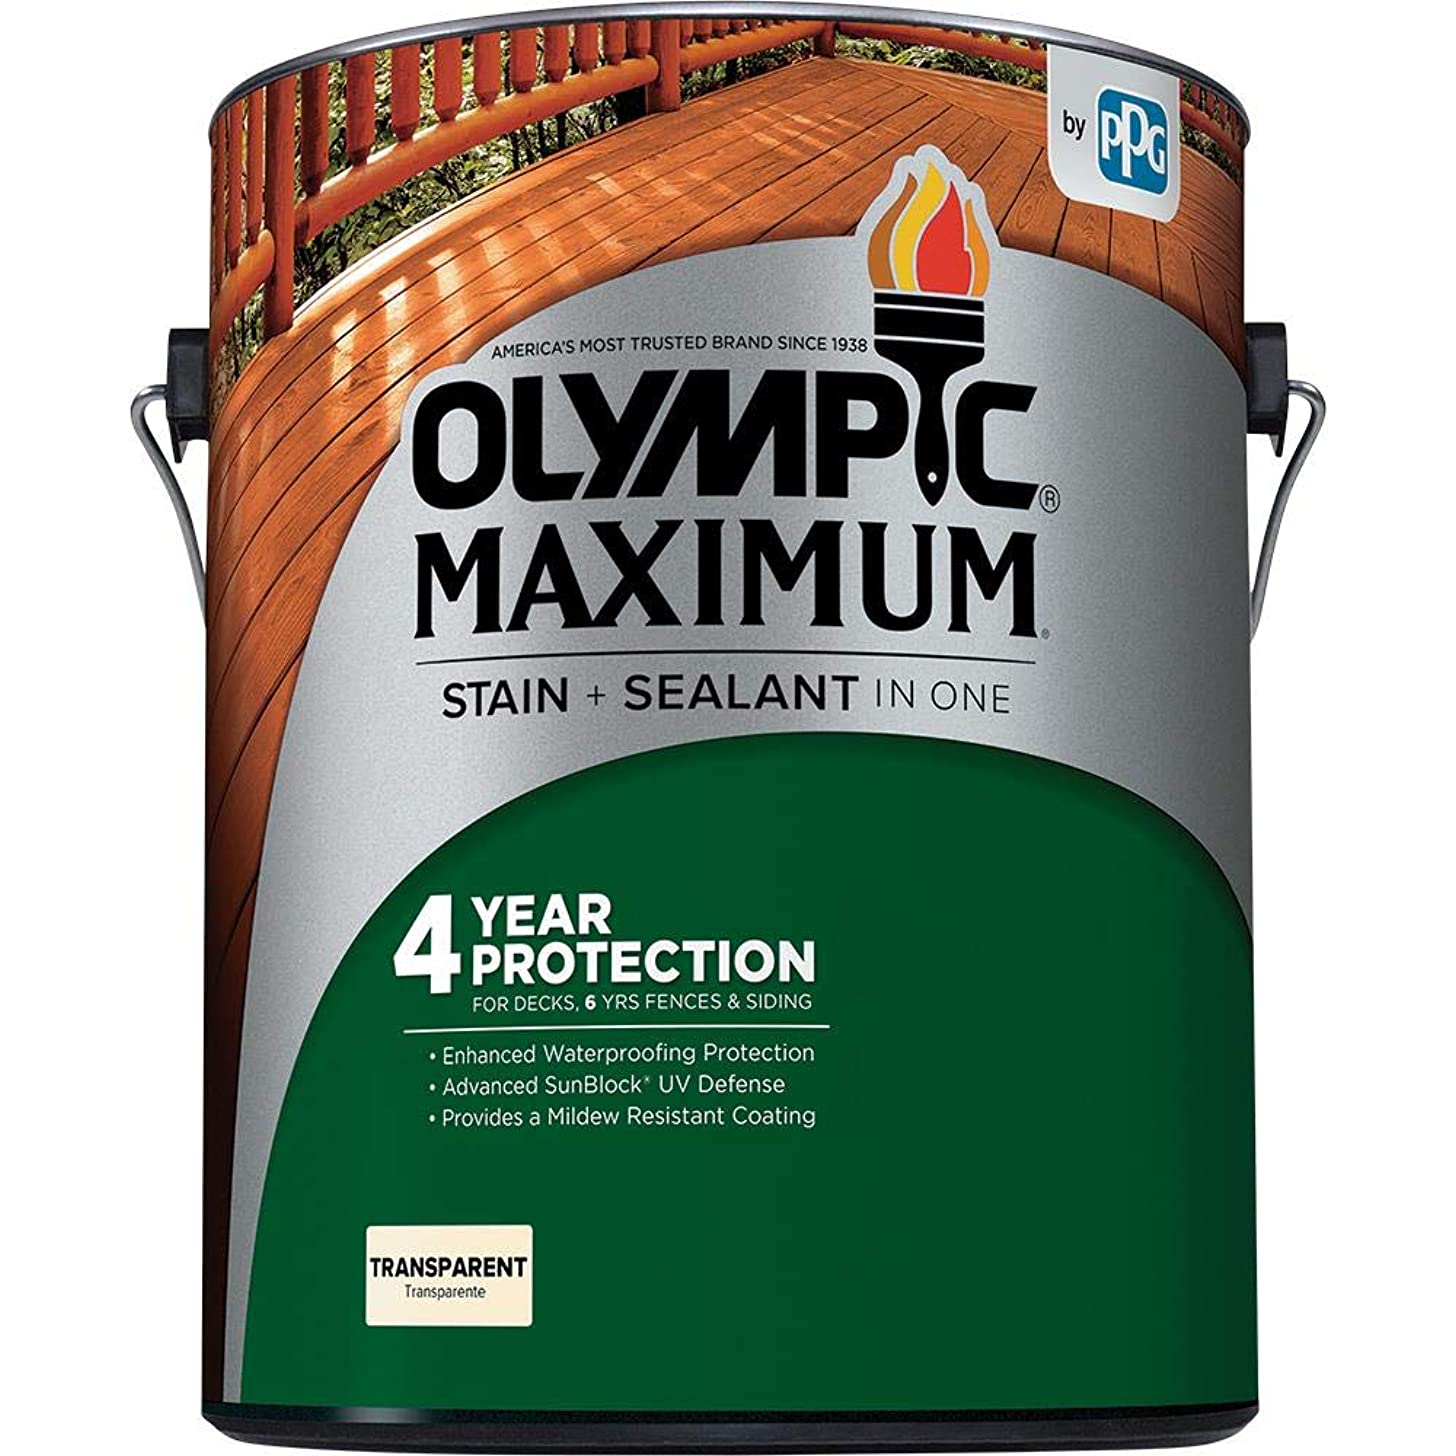 Olympic Stain 56505-1 Maximum Wood Stain and Sealer, 1 Gallon, Transparent Stain, Canyon Brown